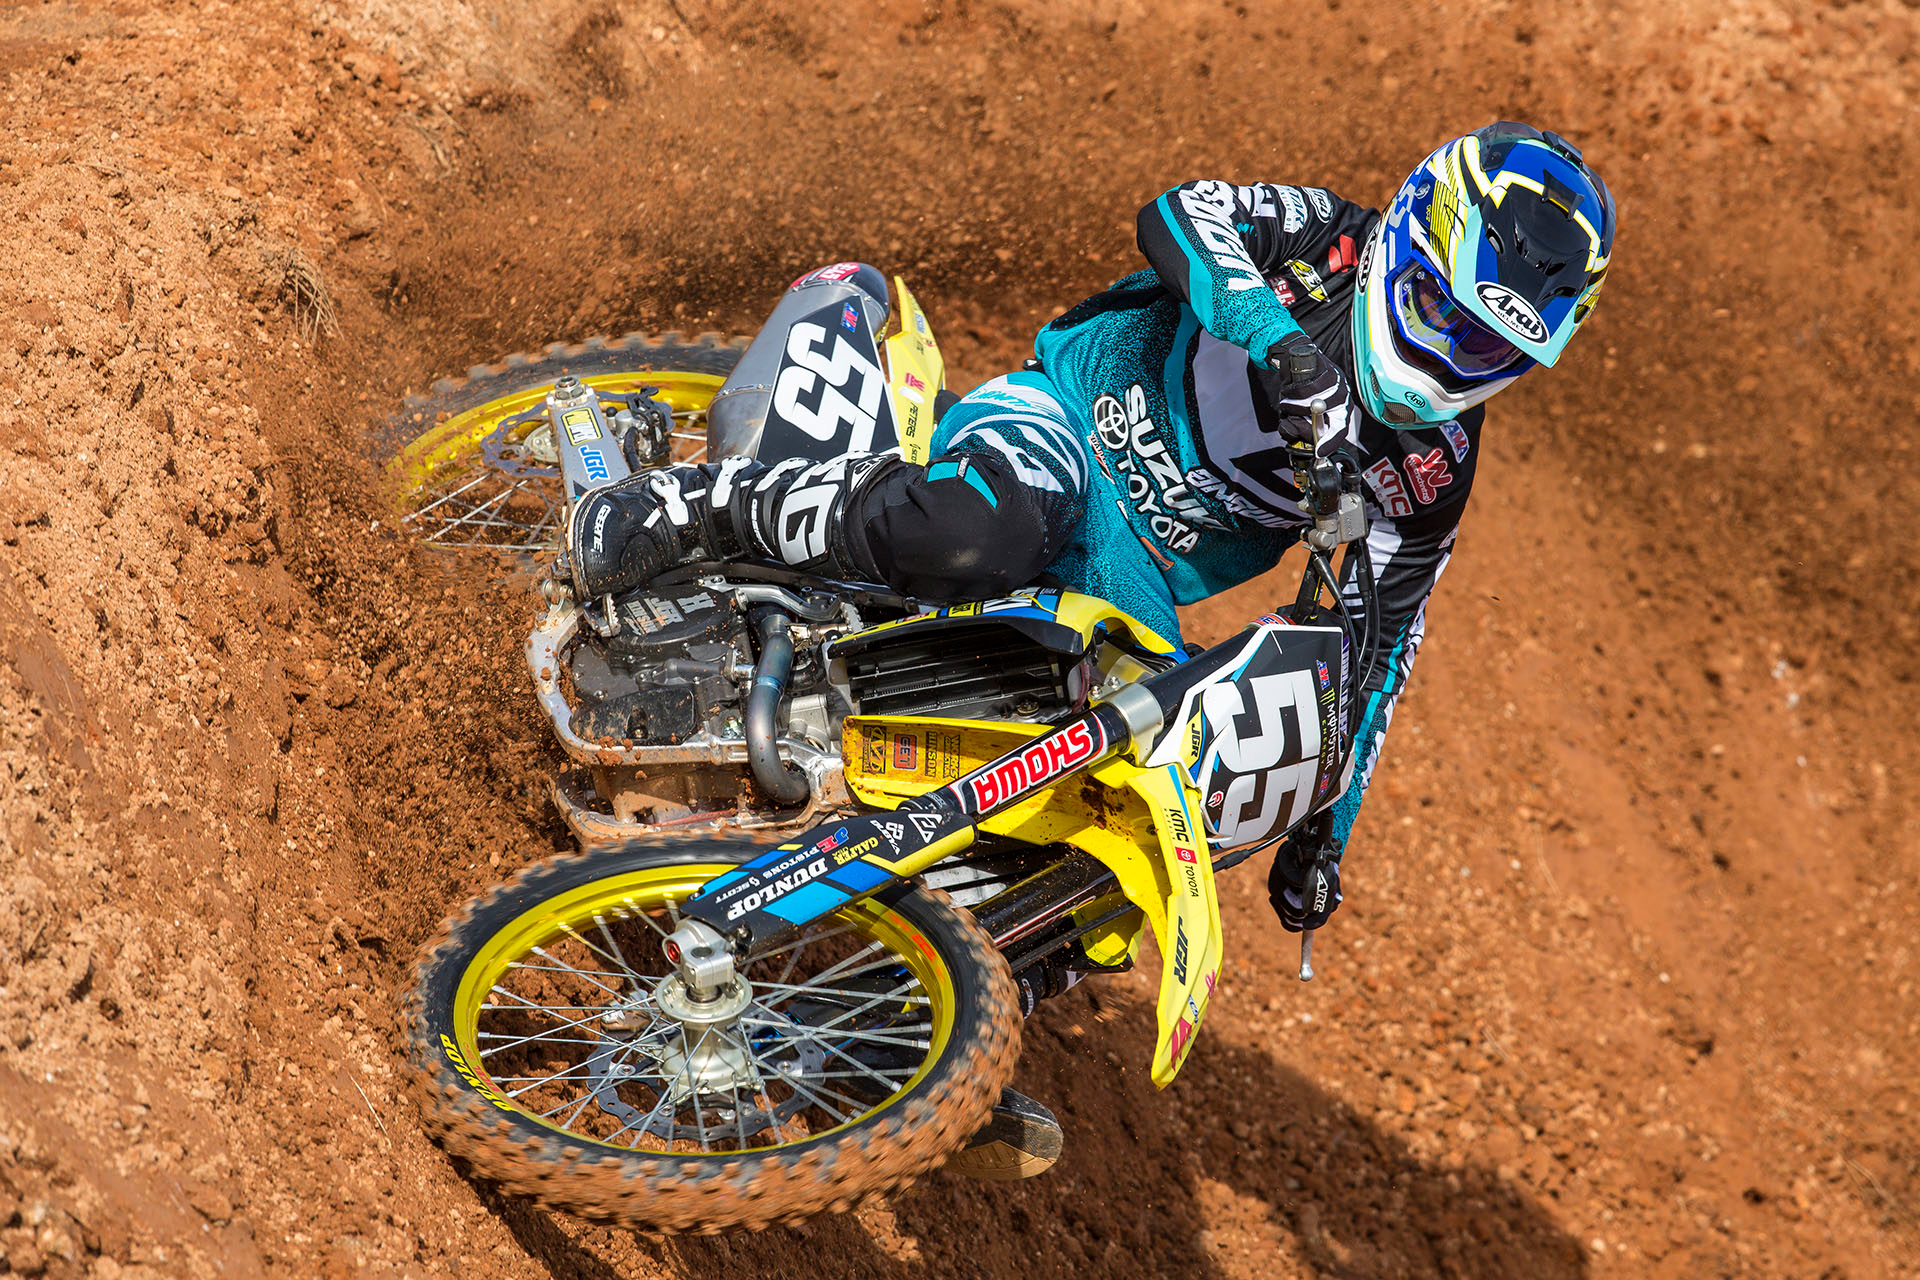 Joining Martin in the 250 East Supercross championship Kyle Peters (#55)